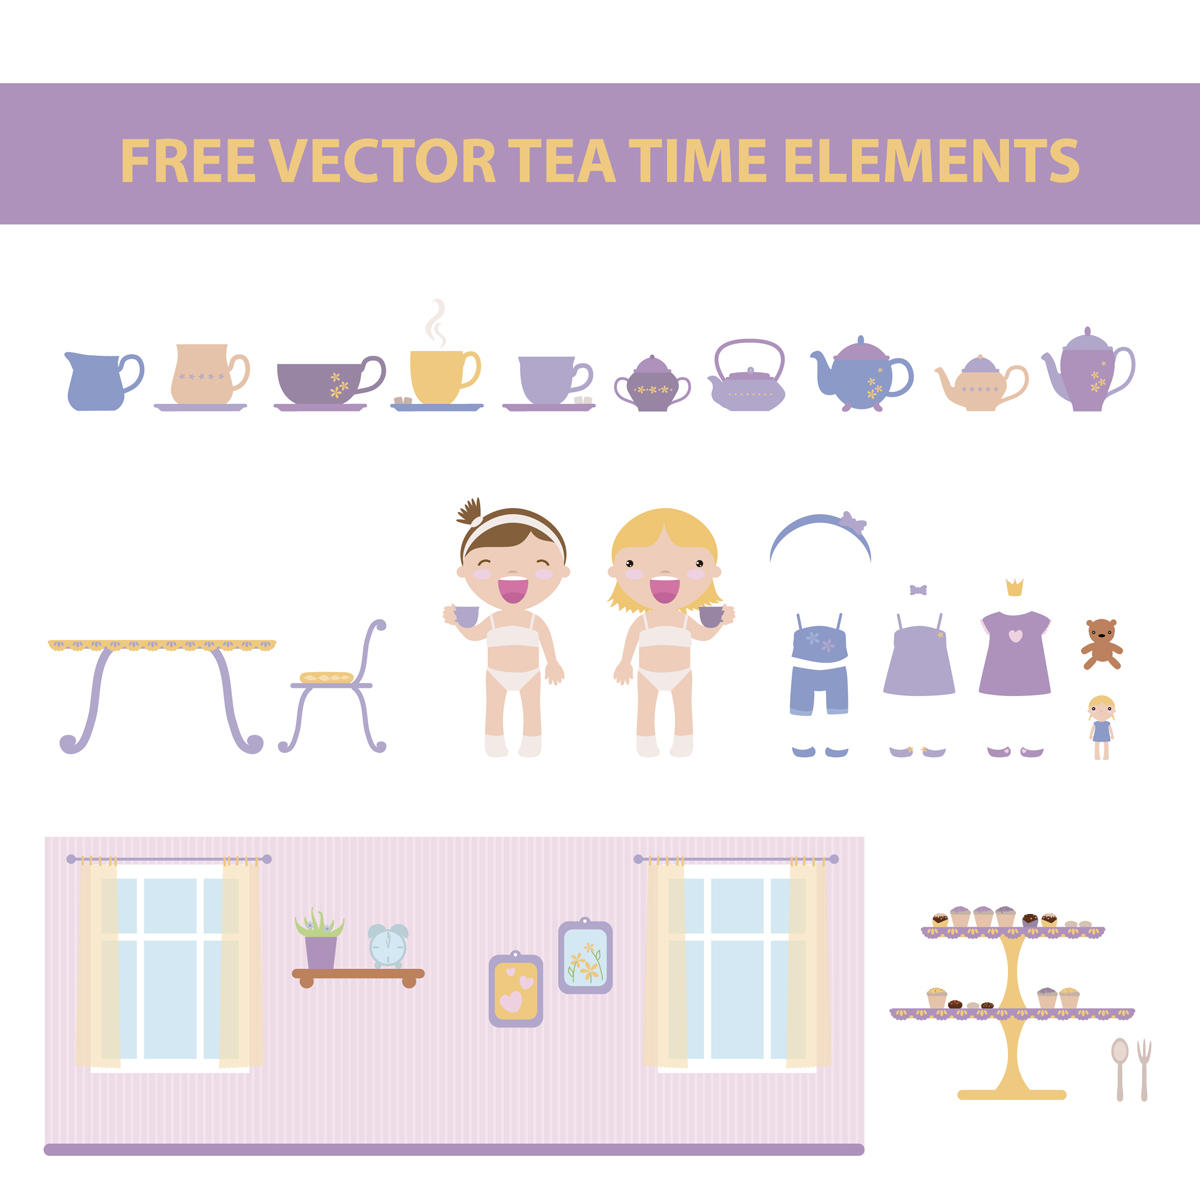 free vector tea time elements by harridan